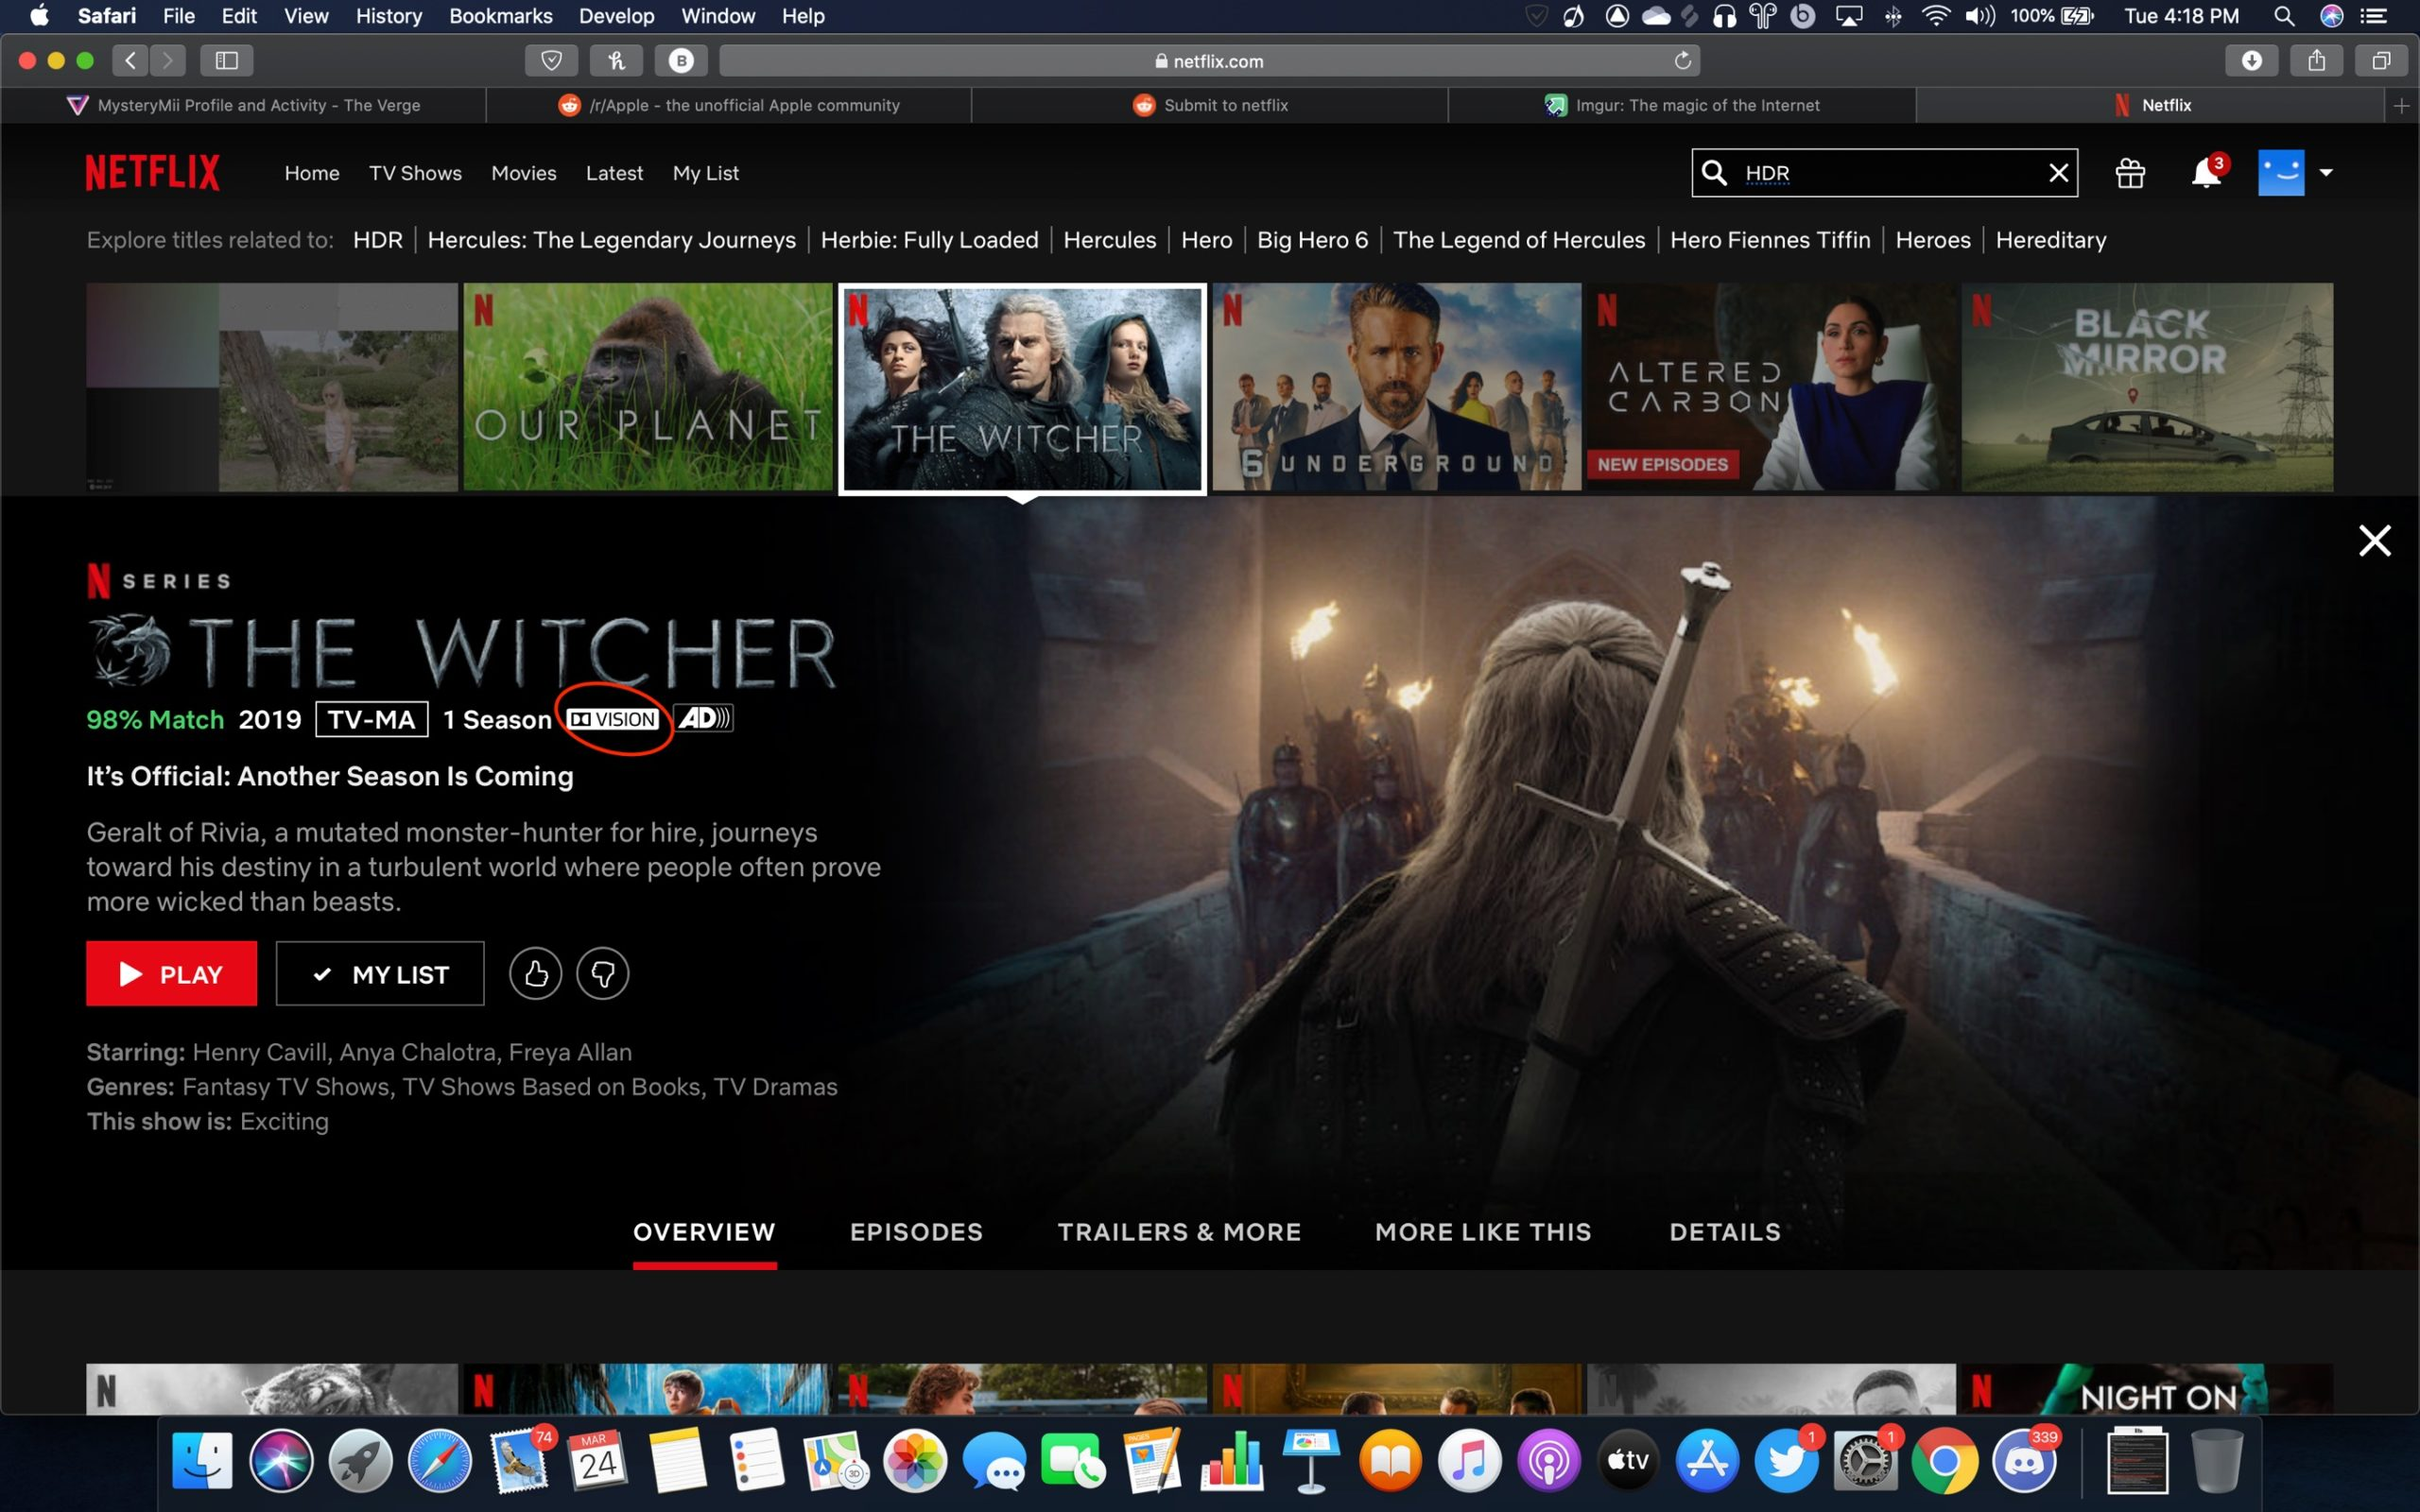 Netflix HDR playback on Safari